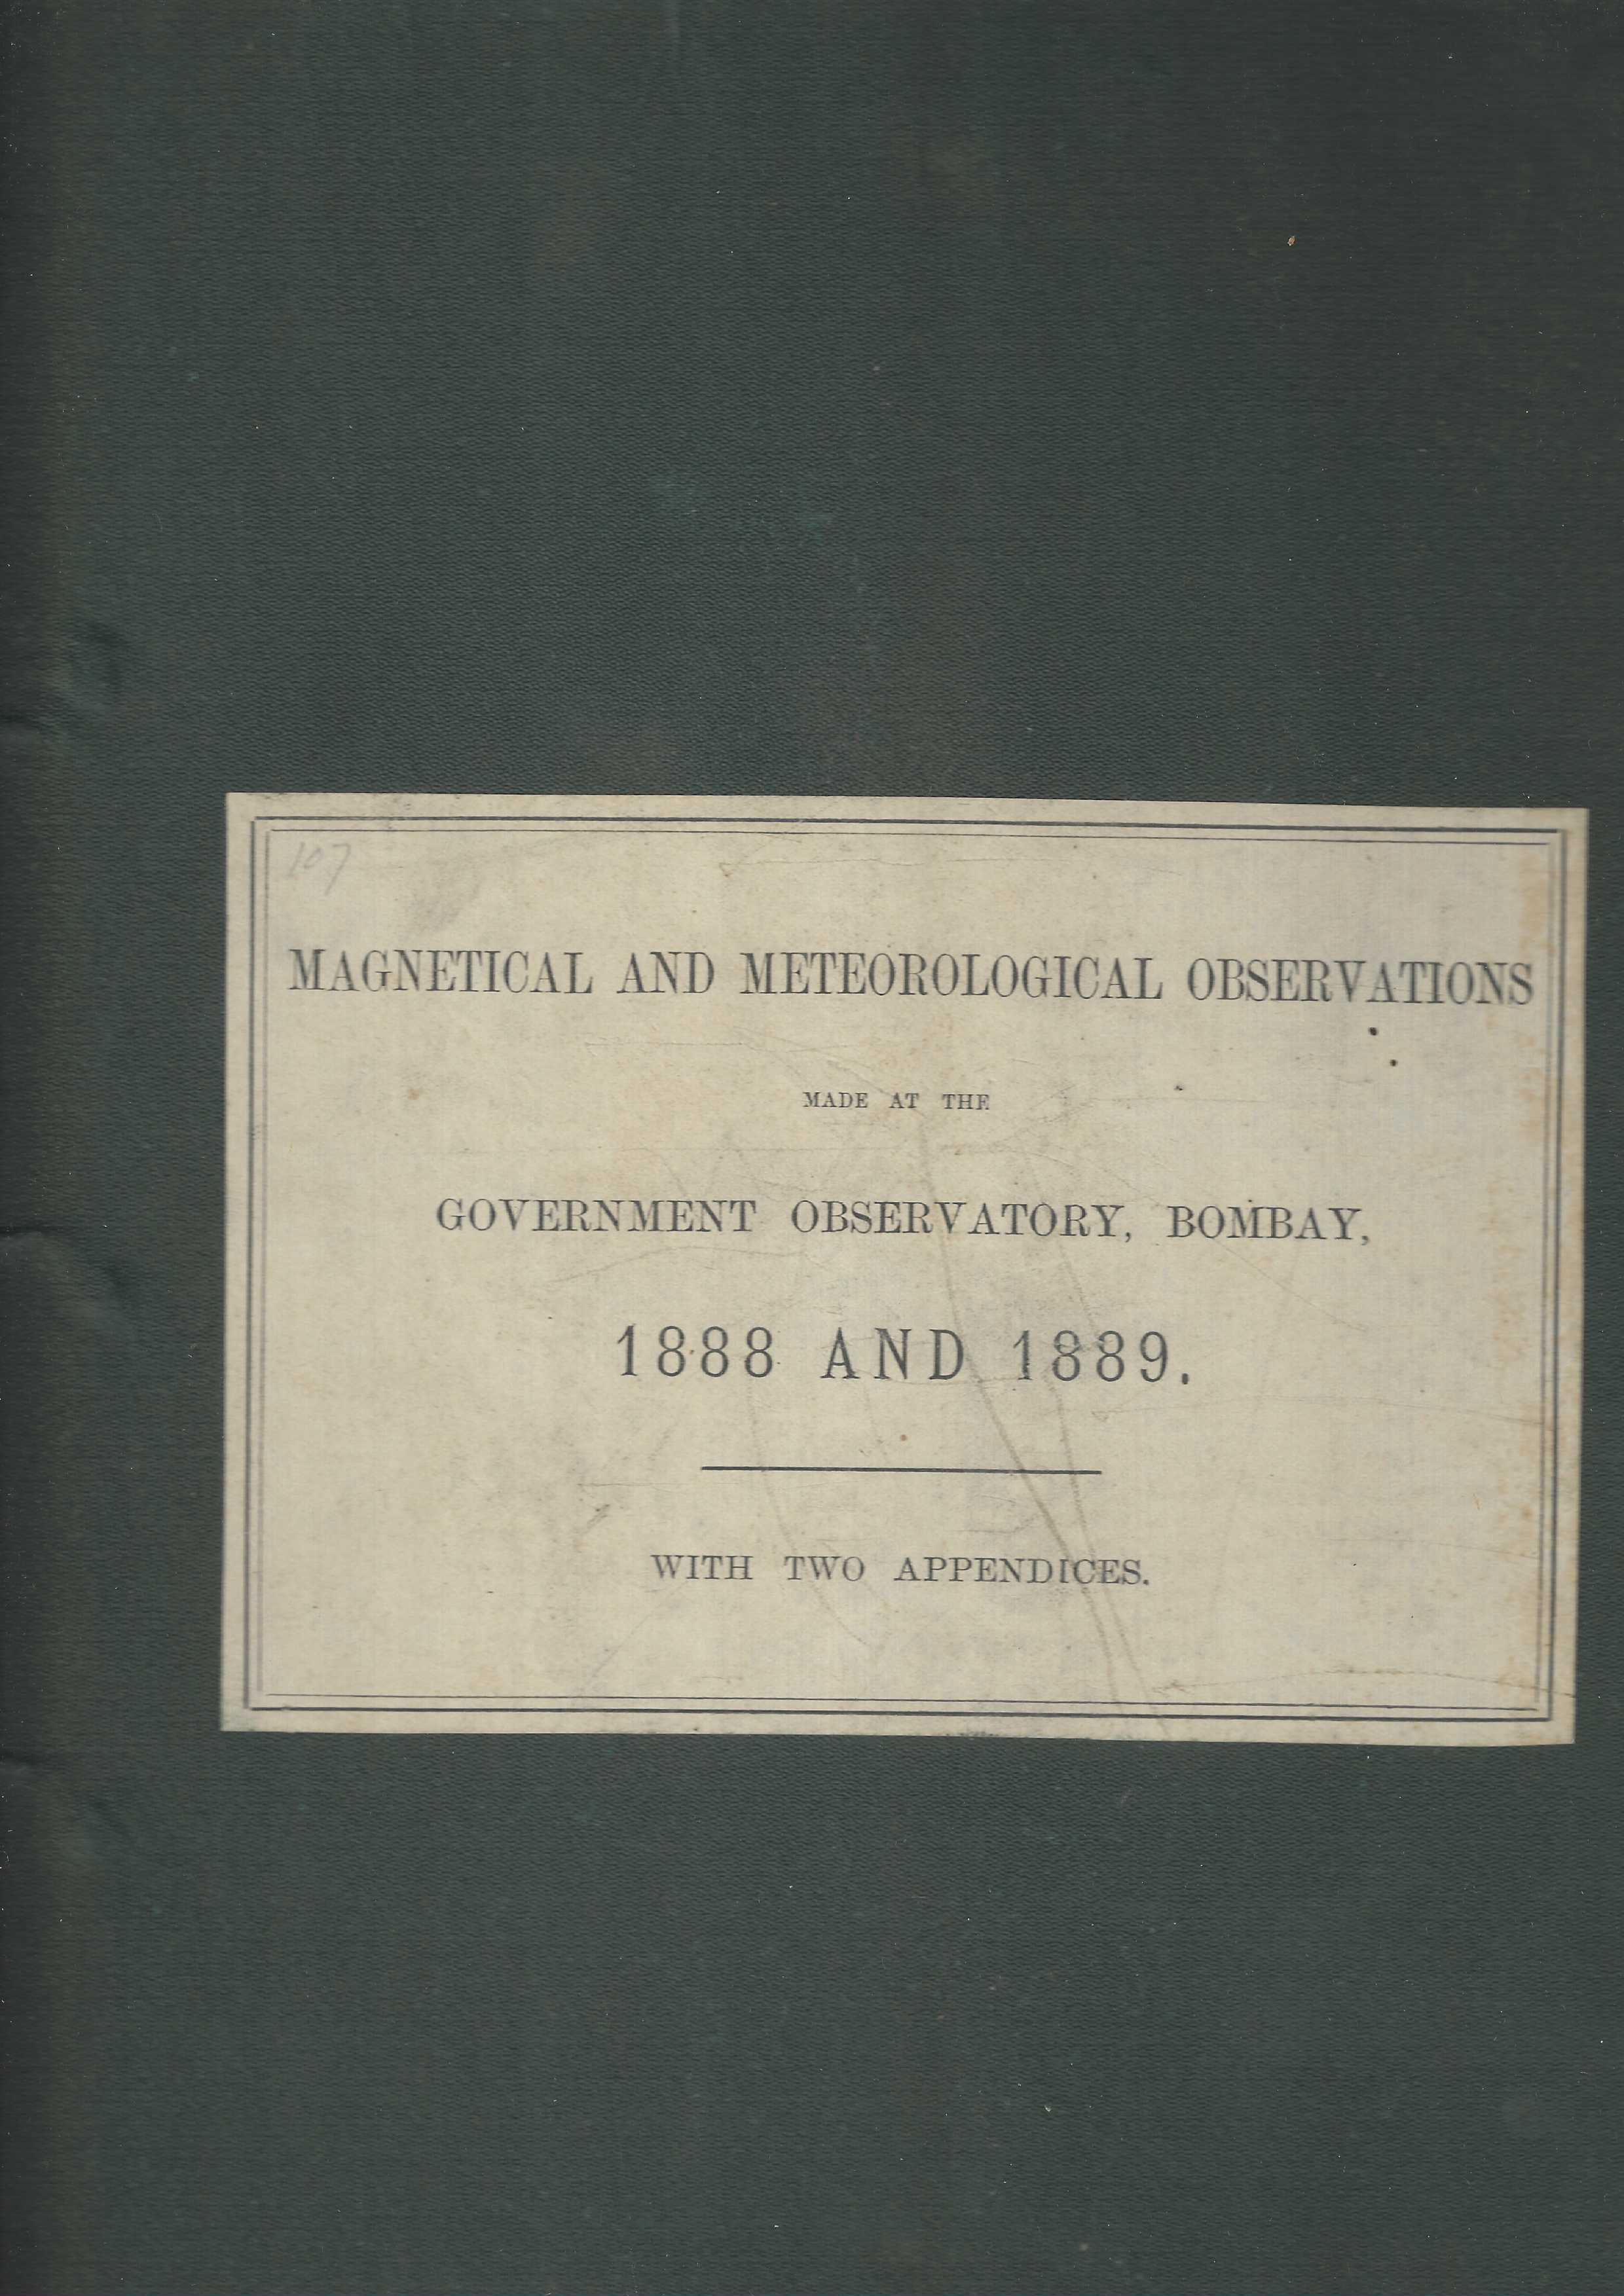 Image for Magnetical and Meteorological Observations made at the Government Observatory, Bombay, in the Years 1888 and 1889. Together with Appendices Containing Accounts of Magnetic Researches.